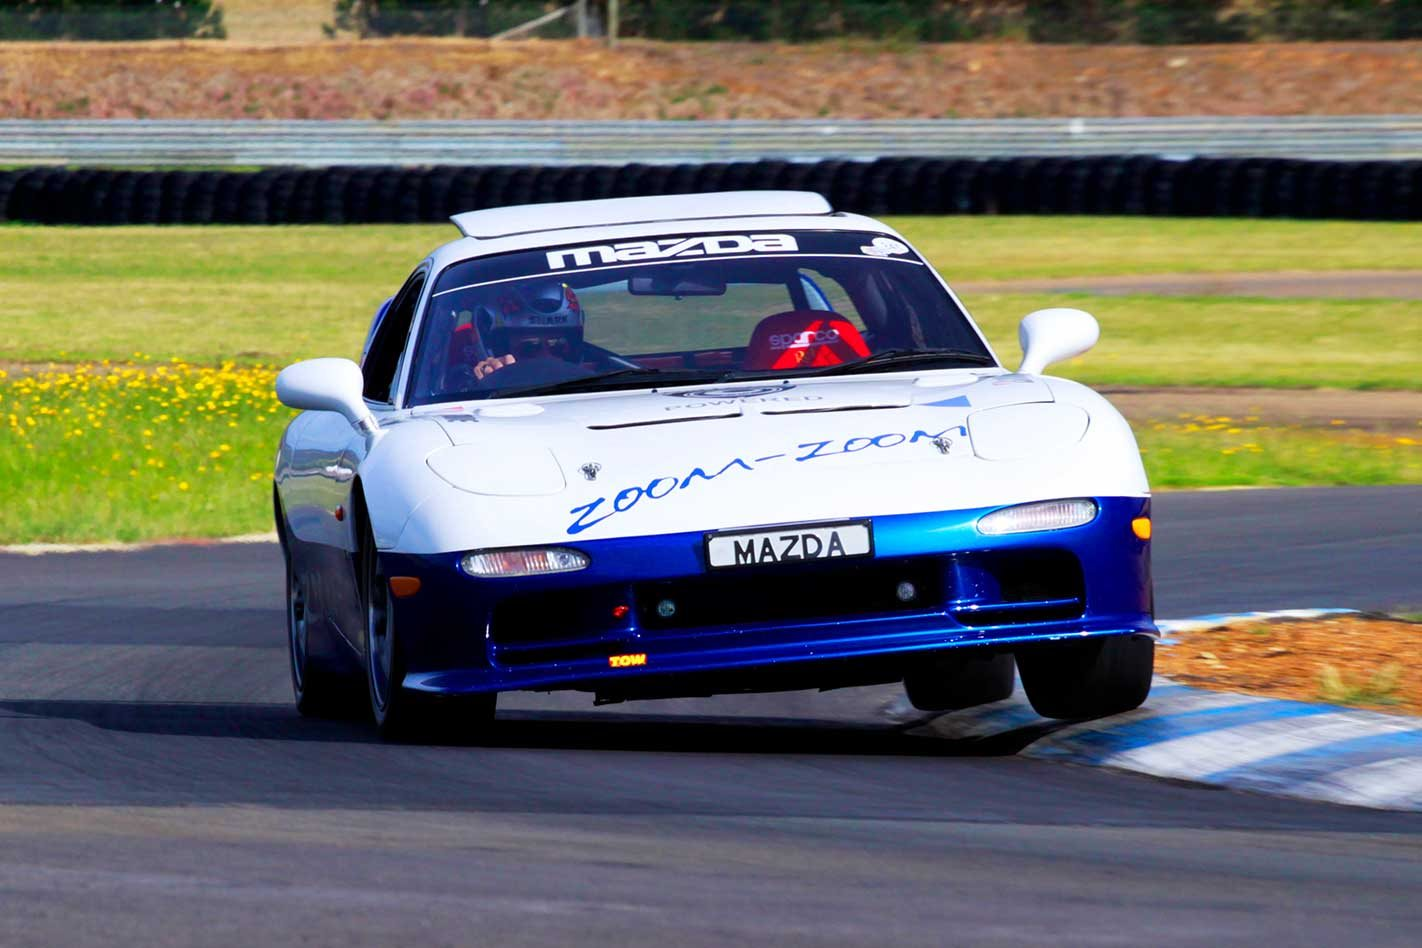 1995 mazda rx-7 sp quick review: classic motor